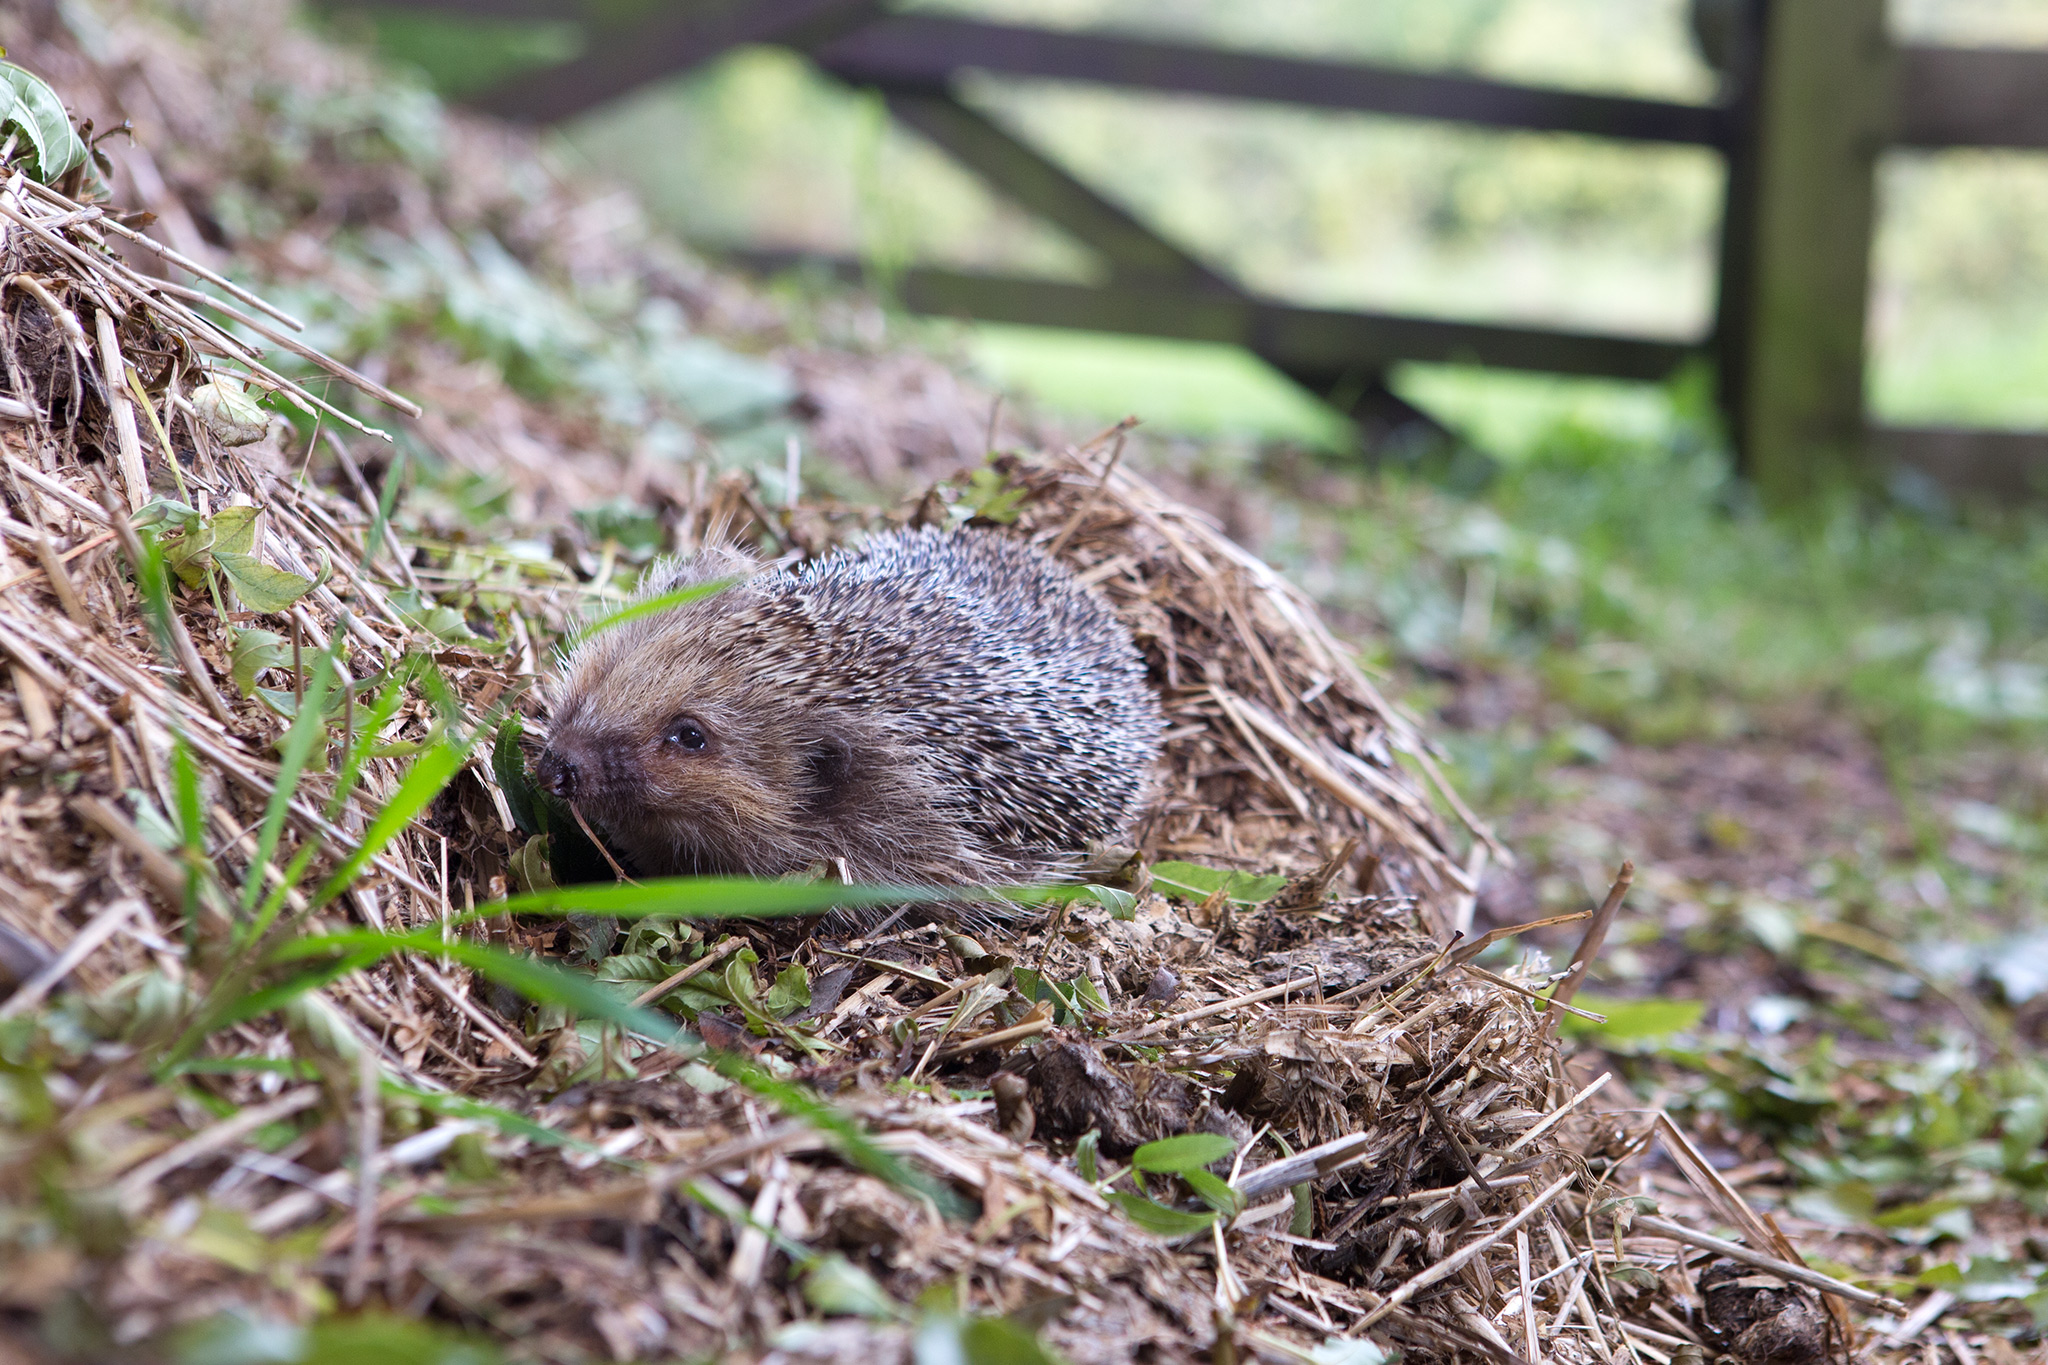 avoid-turning-the-compost-heap-to-avoid-disturbing-hibernating-hedgehogs-2